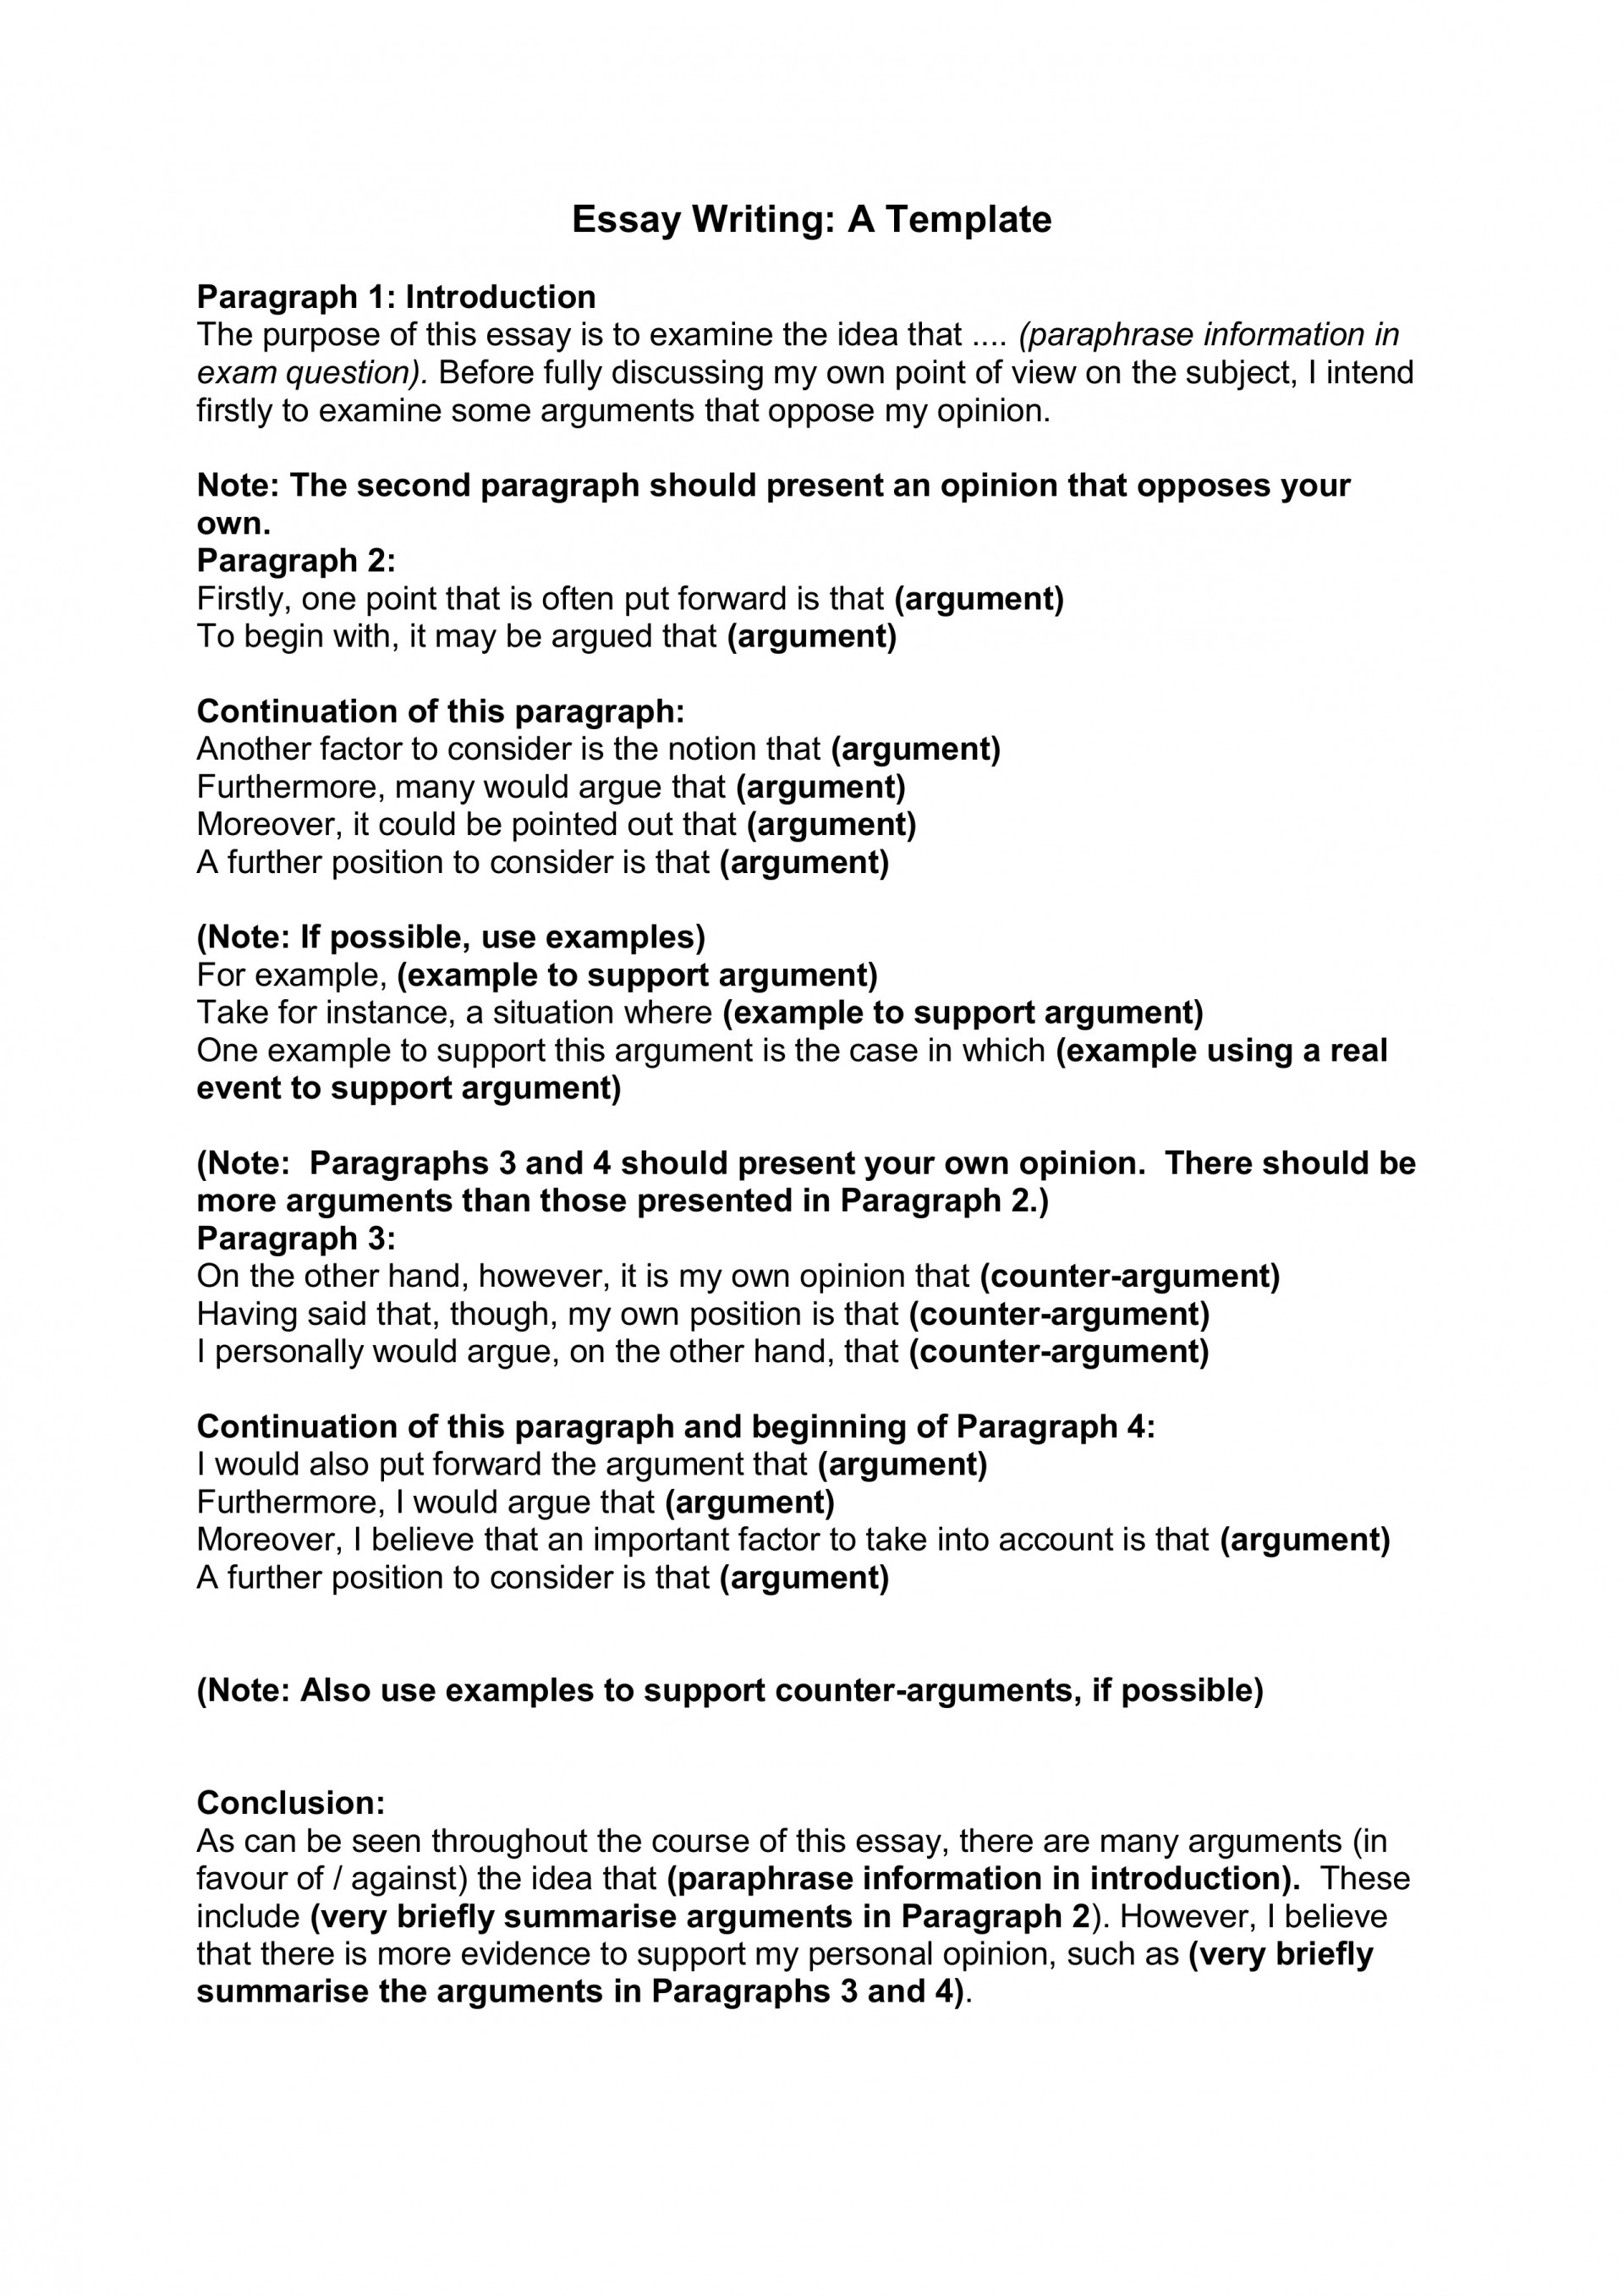 015 Essay Writing Template For Part 2cbu003d Research Paper Order Of Wonderful A Reviews Making 1920